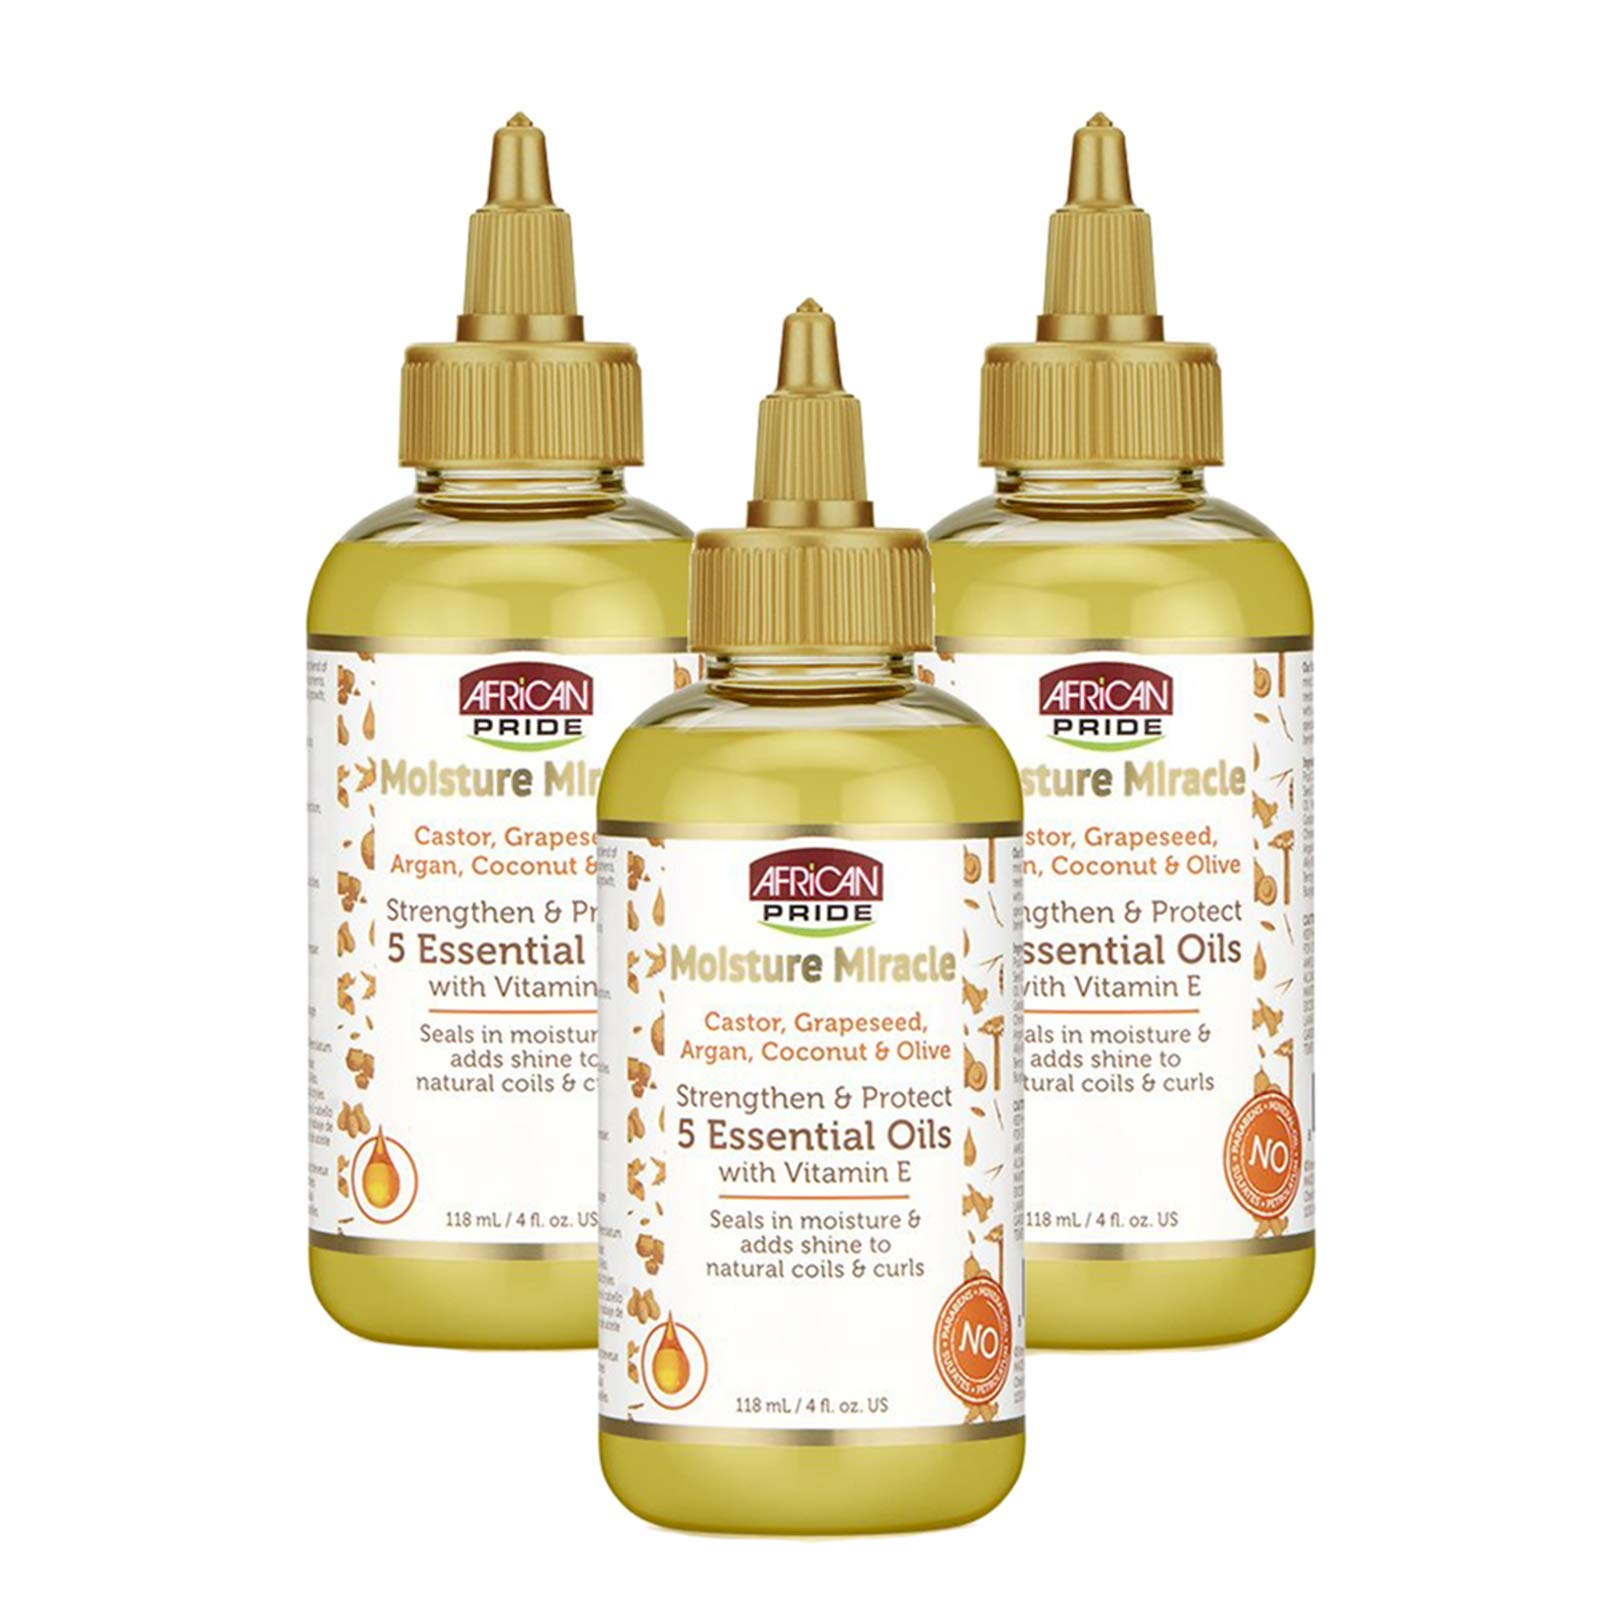 African Pride Moisture Miracle 5 Essential Oils (3 Pack) - Contains Castor, Grapeseed, Argan, Coconut & Olive Oil, Seals in Moisture & Adds Shine, Vitamin E, 4 oz